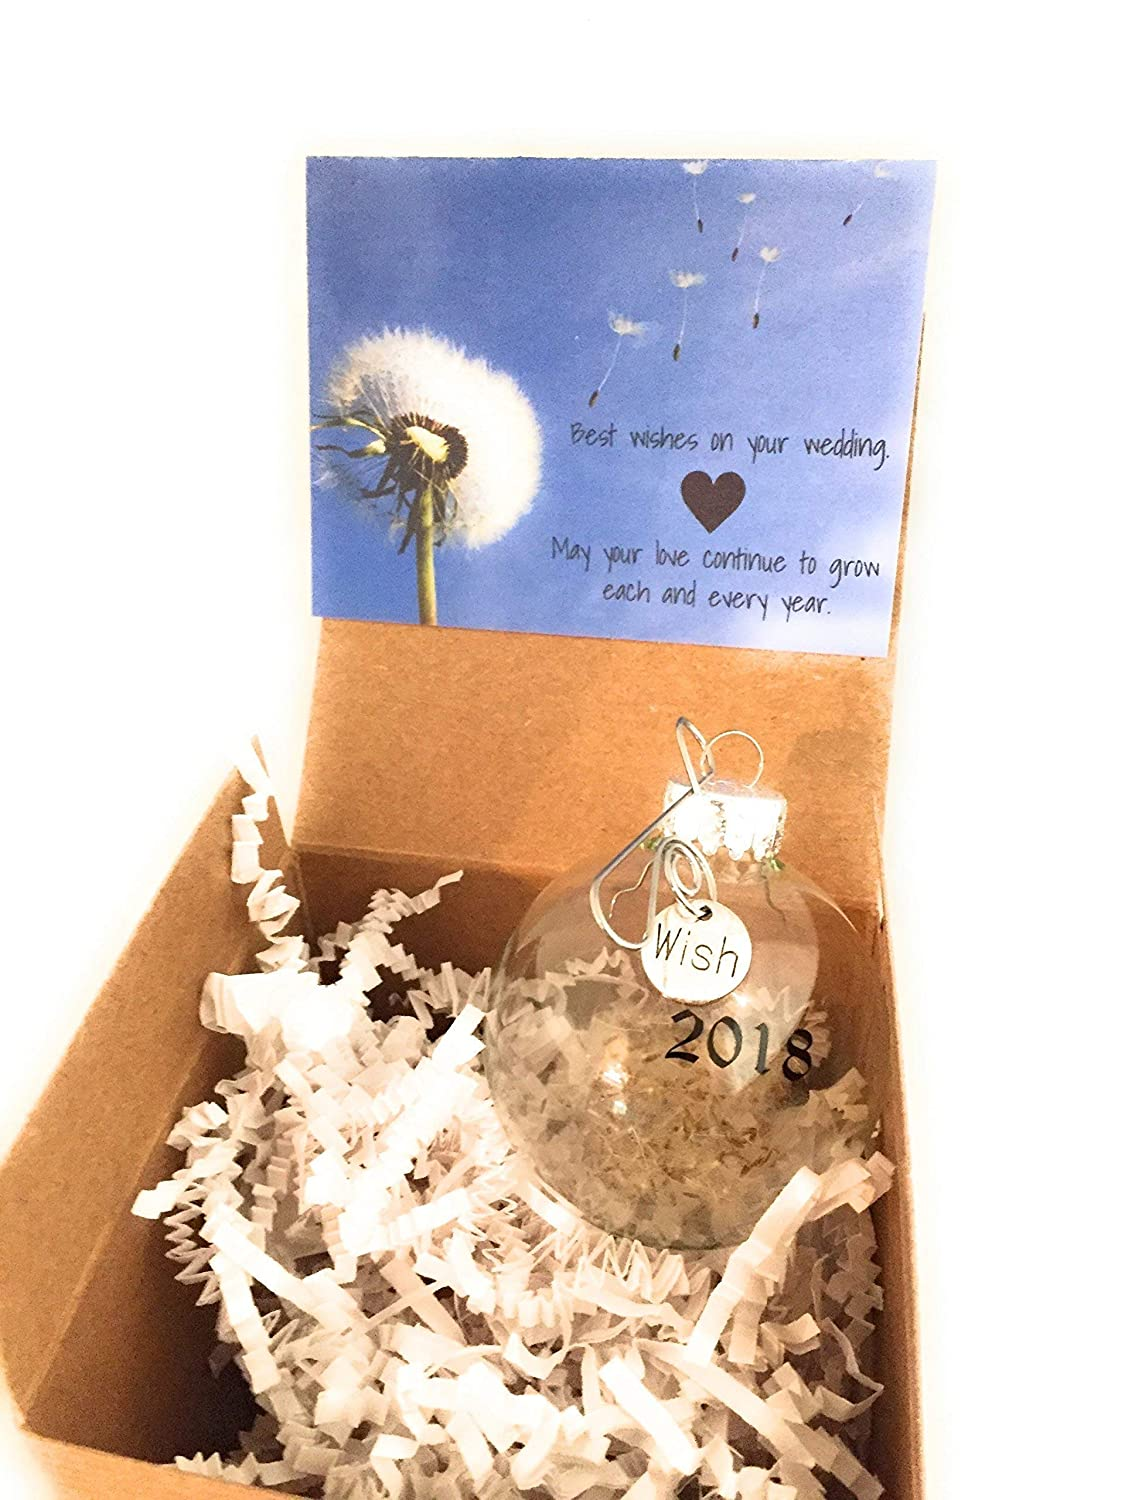 fc2e14e4c47 Amazon.com: 2018 Wedding Gift | Dandelion Seeds Wishes Glass Globe Keepsake  Ornament. Card and Gift Box included. Bridal Shower Newlyweds Brides and  Grooms.